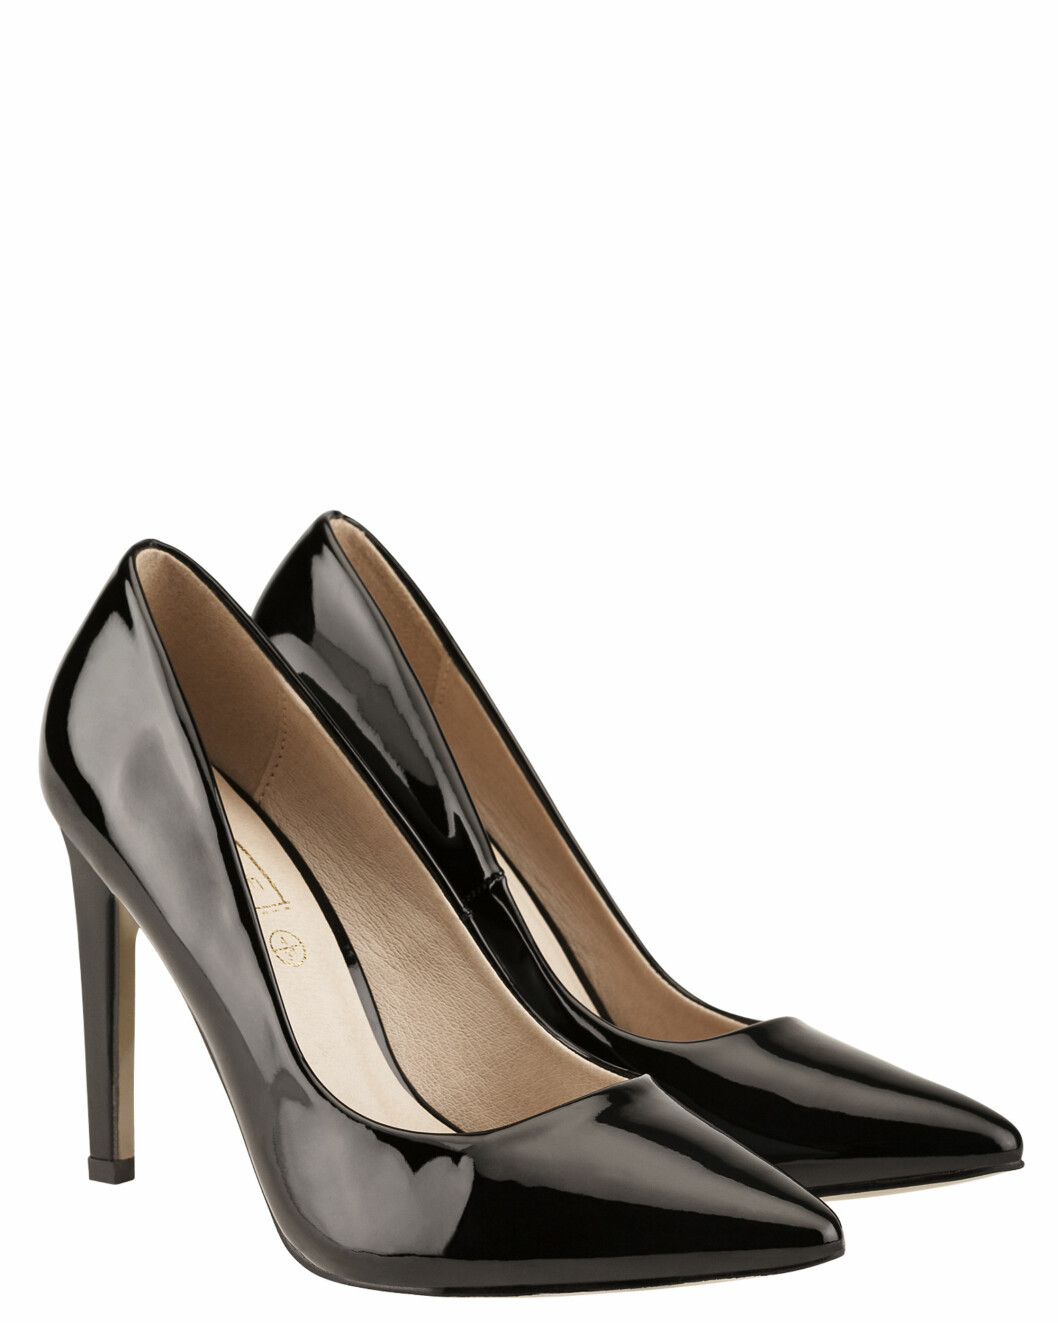 Pumps fra Truffle via Bubbleroom.no | kr 399 | https://track.adtraction.com/t/t?a=1118337868&as=1115634940&t=2&tk=1&url=http://www.bubbleroom.no/nn/sko/dame/truffle-1/fest-1/pumps-nova1-svart-lakk